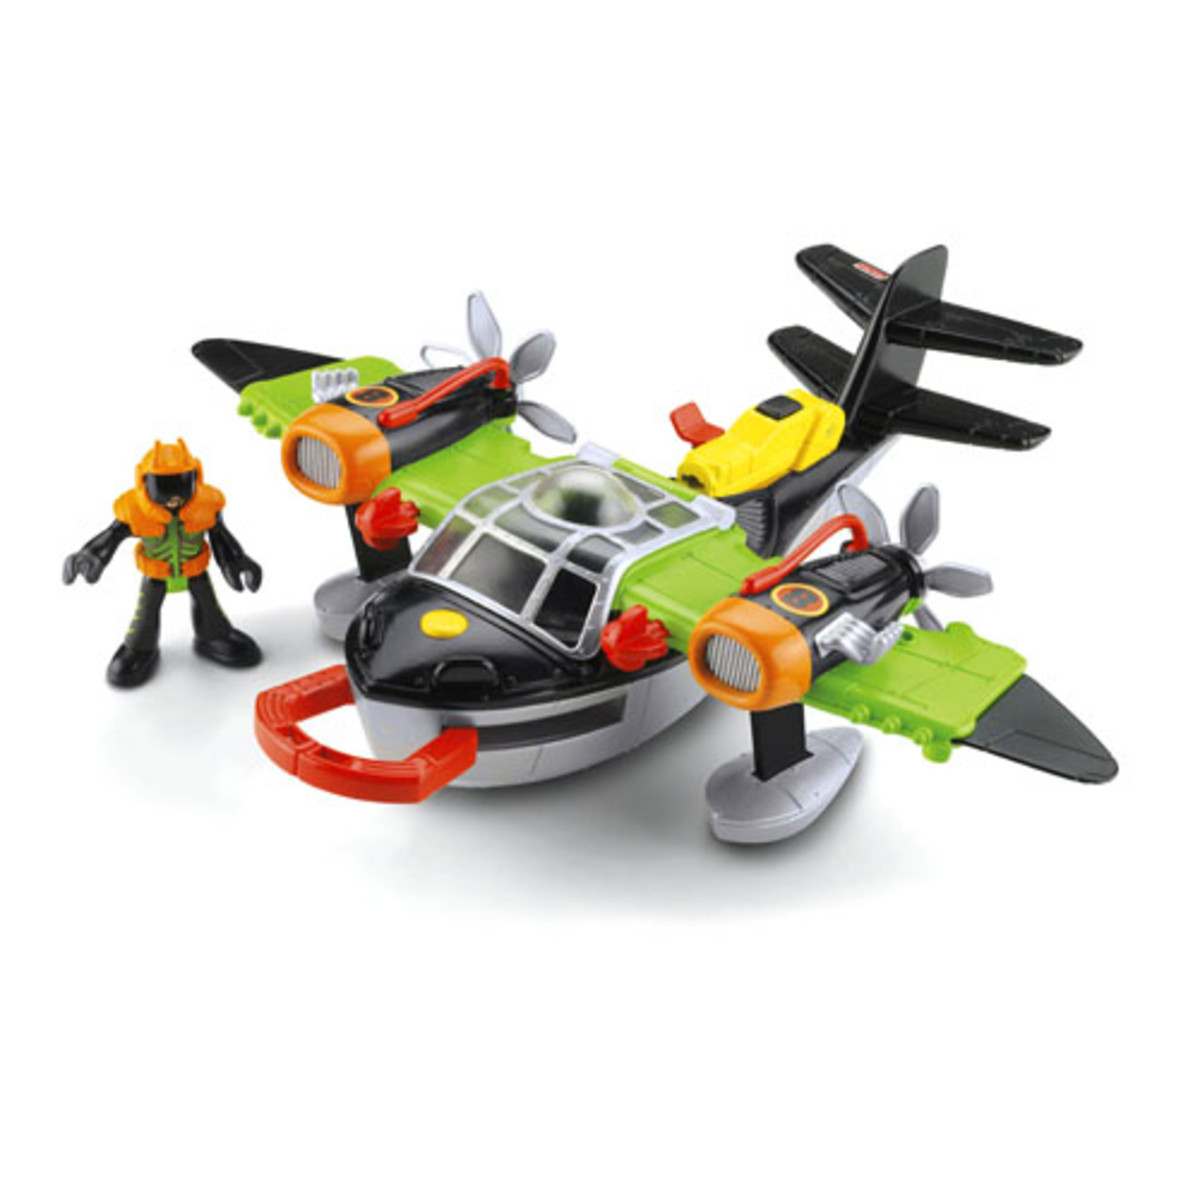 Fisher Price Imaginext Sky Racers Airplane Toy Review